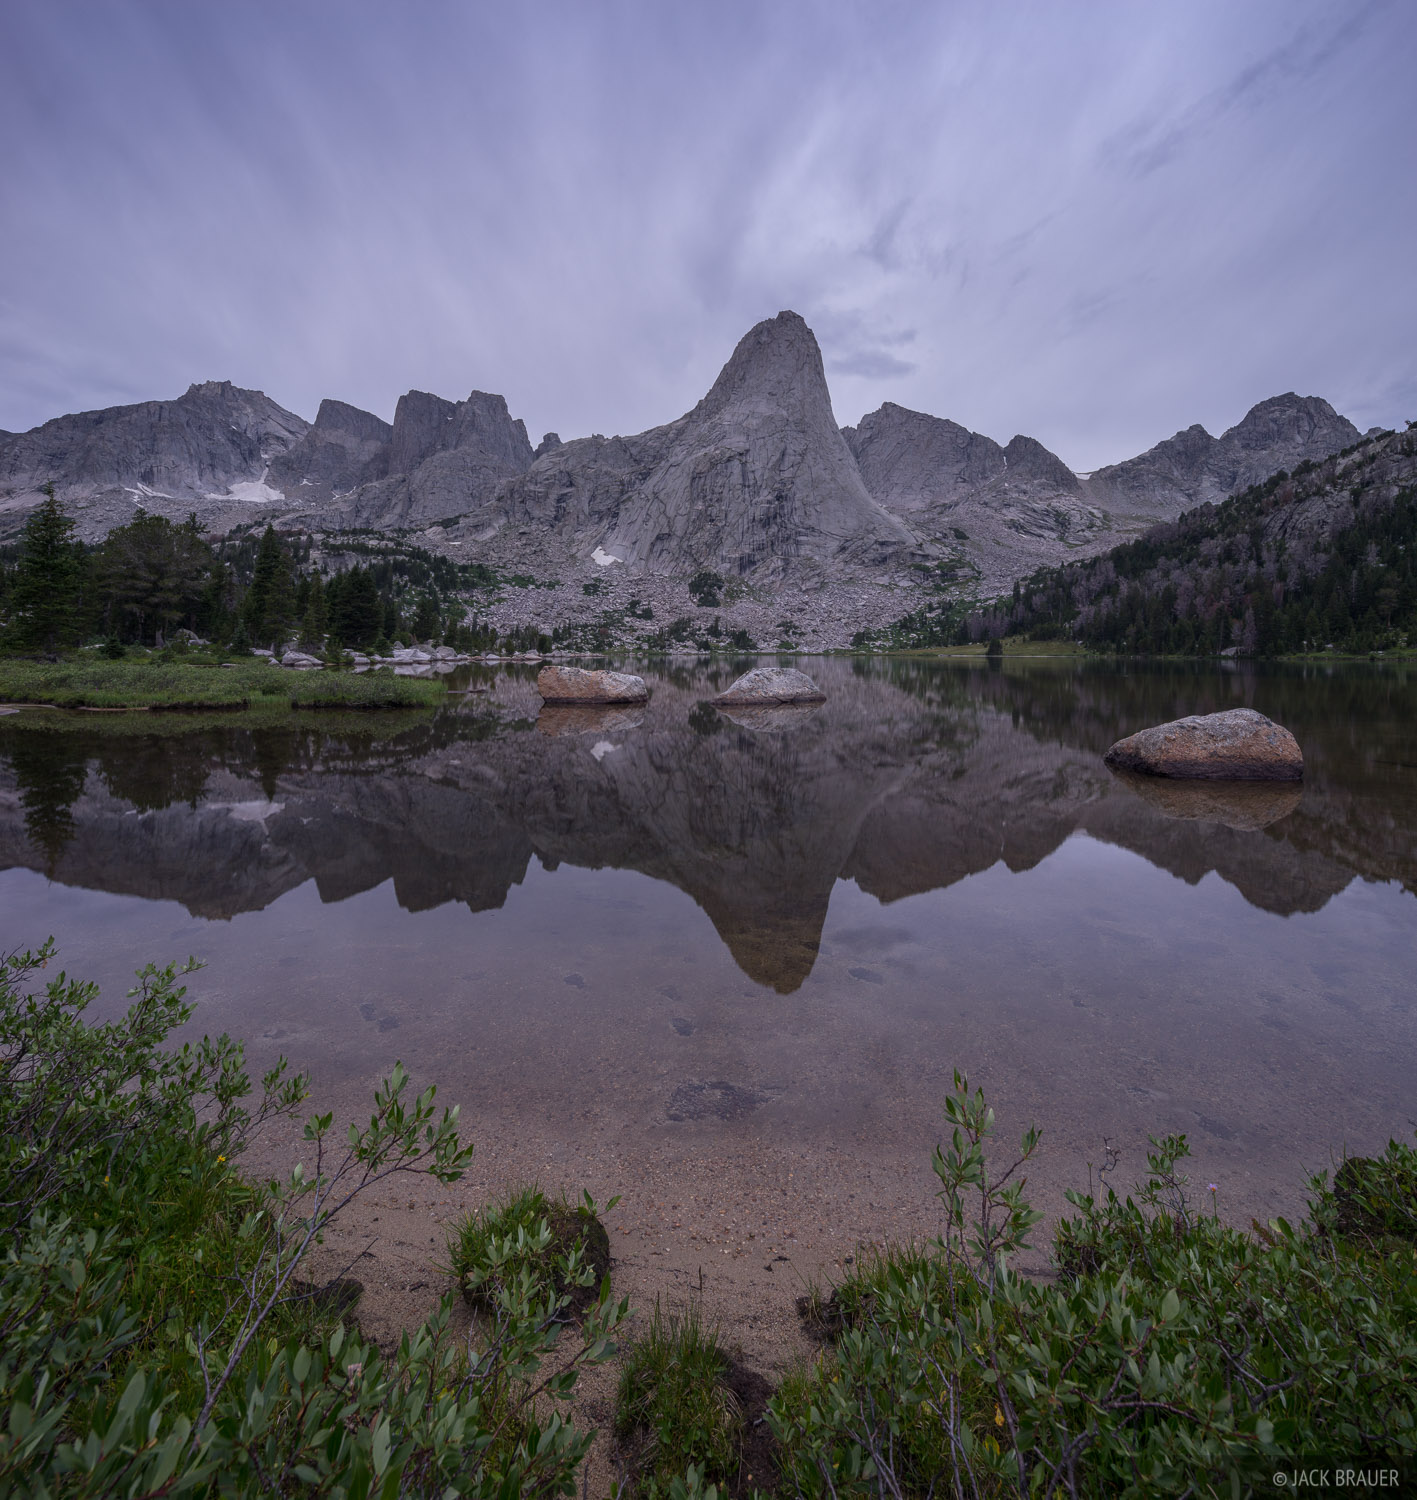 Cirque of the Towers,Pingora Peak,Wind River Range,Wyoming, Lonesome Lake, photo